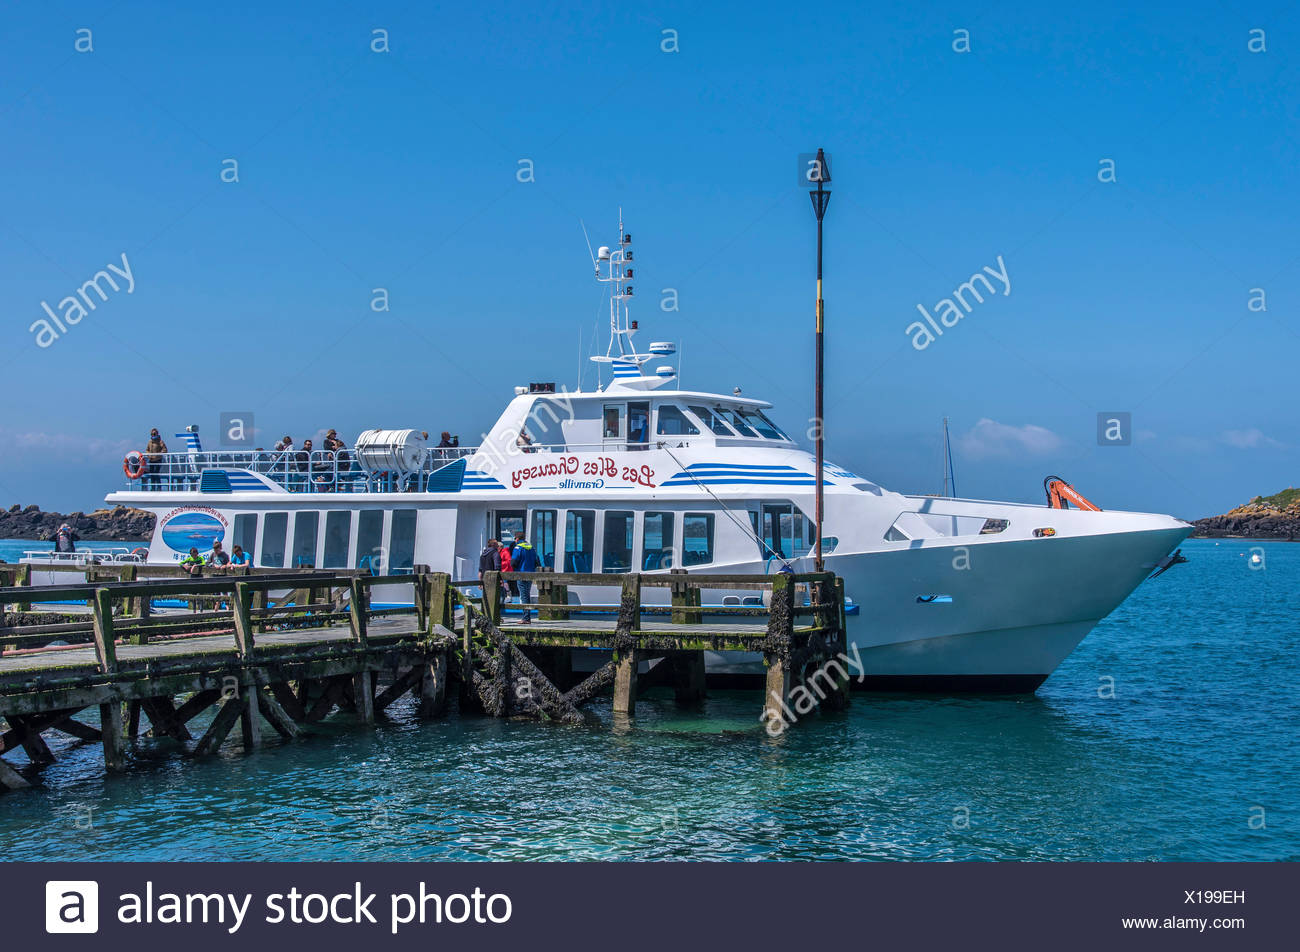 Manche Chausey Stock Photos & Manche Chausey Stock Images - Alamy